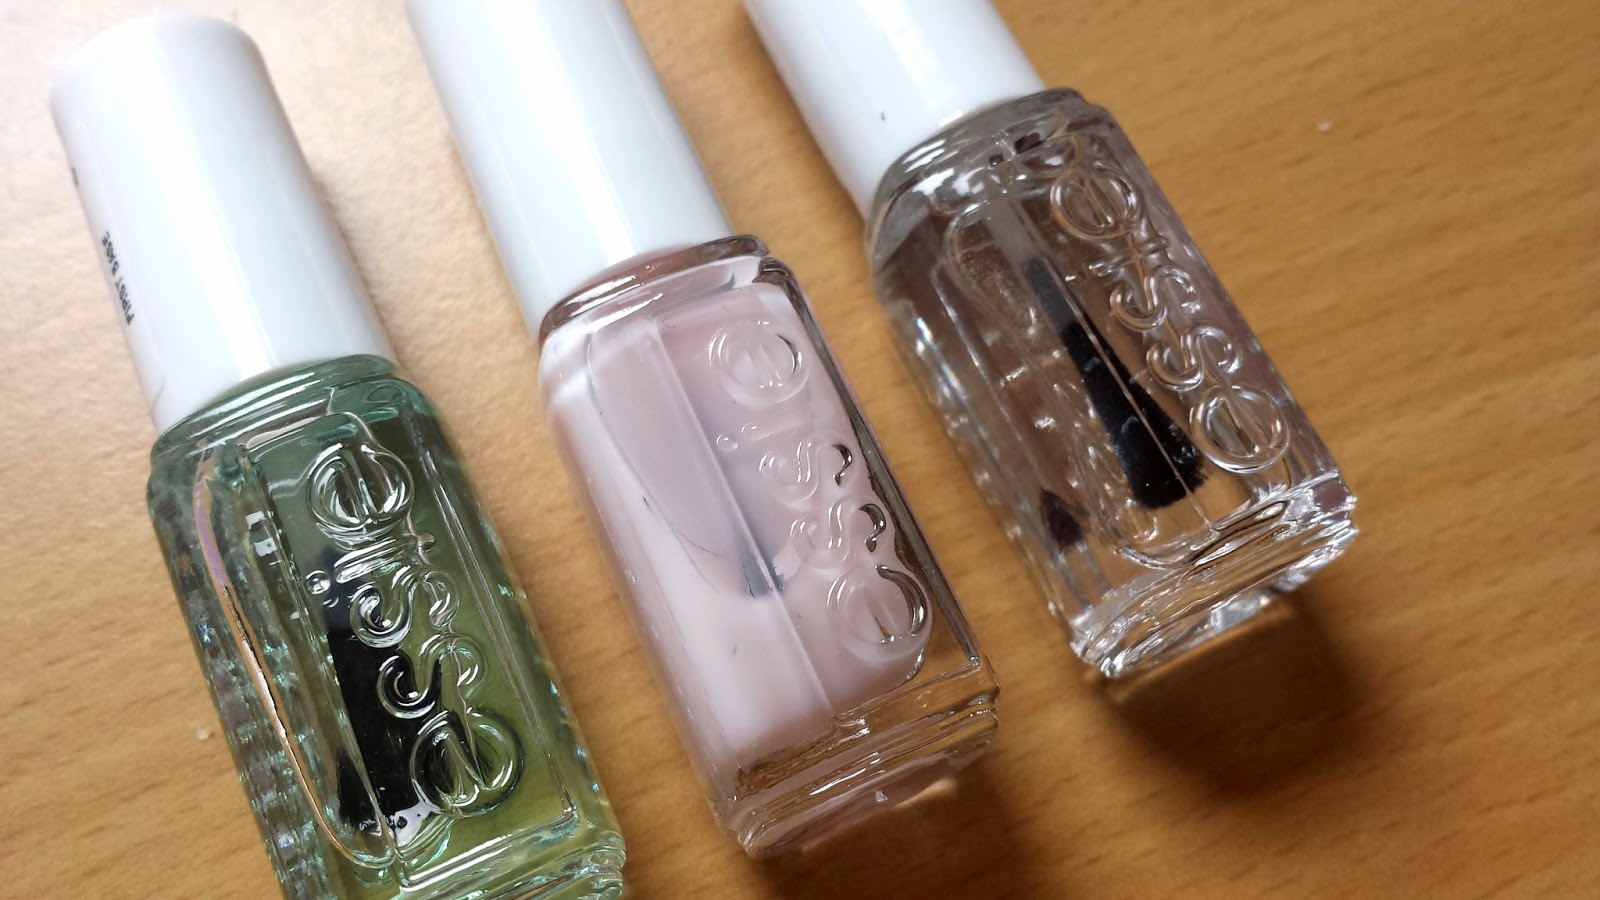 ESSIE PROFESSIONAL ROUTINE - The Beauty Type